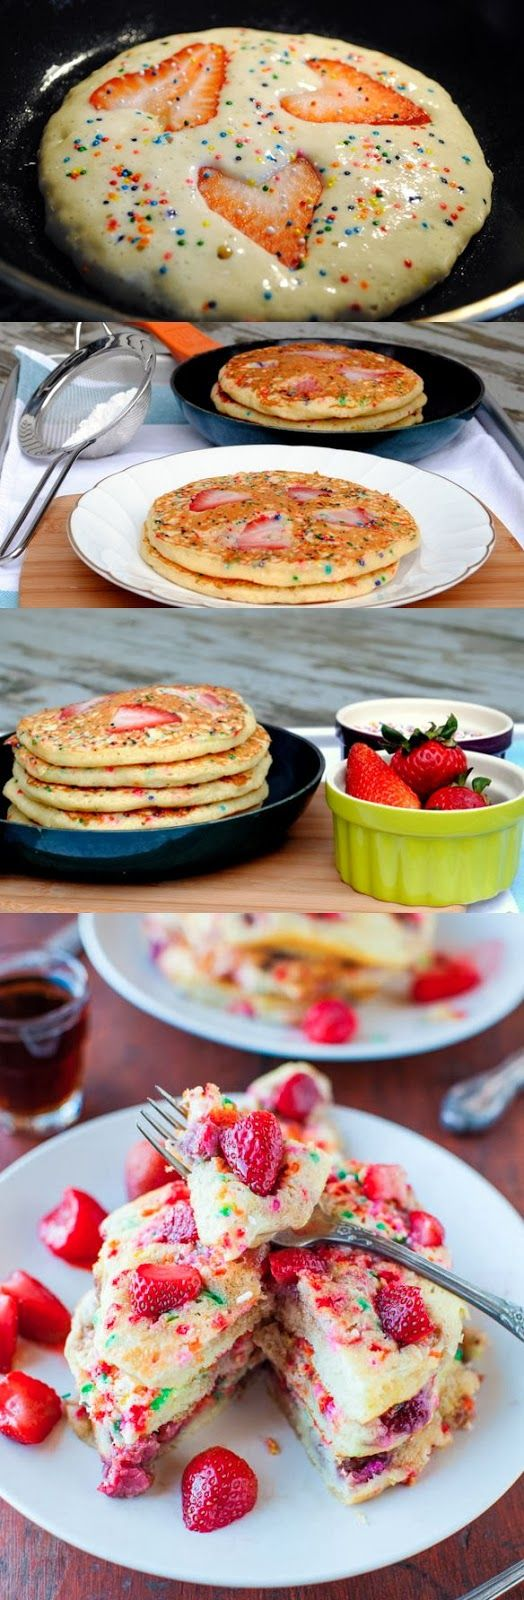 Prolong Pancake Day with Strawberry Sprinkle Funfetti Pancakes